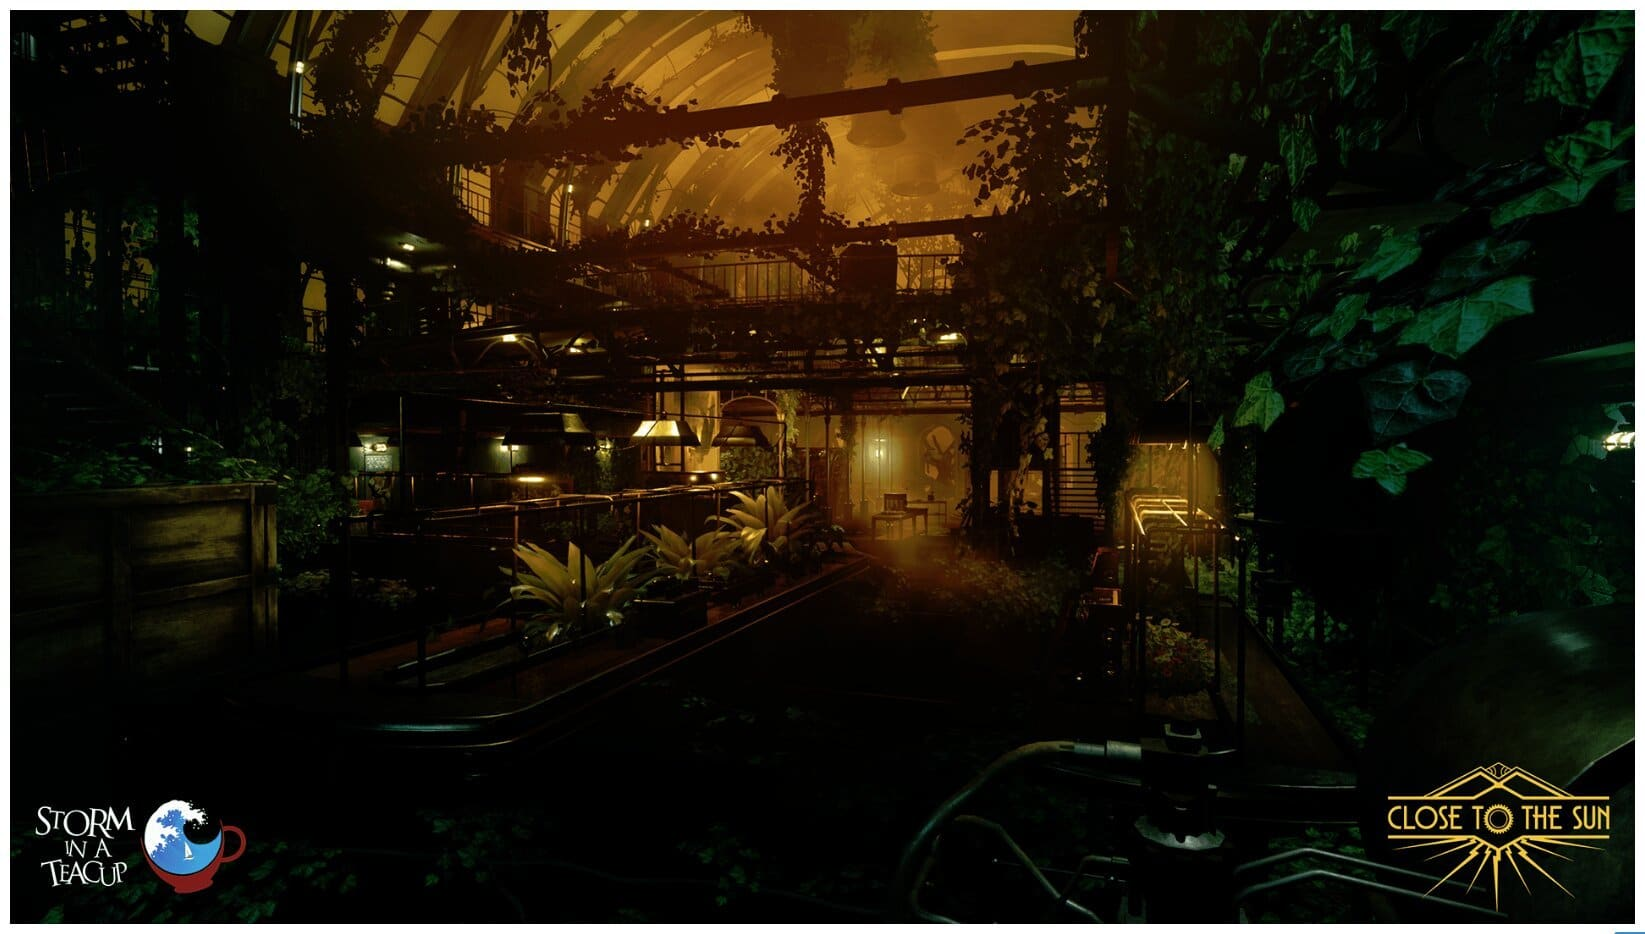 Image 9 : Close to the Sun, fils spirituel de Bioshock, passe à Unreal Engine 4, et c'est beau !